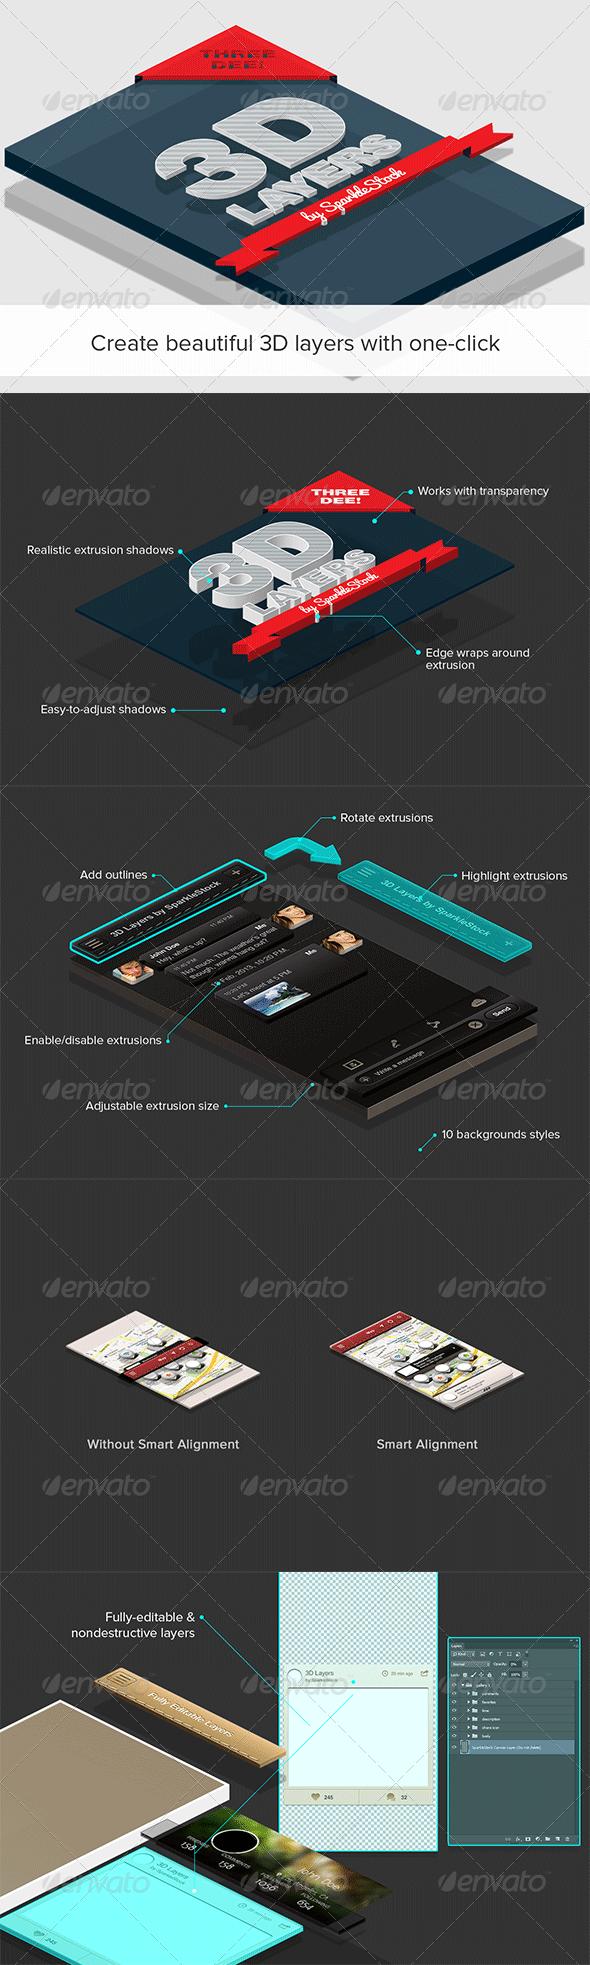 GraphicRiver 3D Layers 5245202